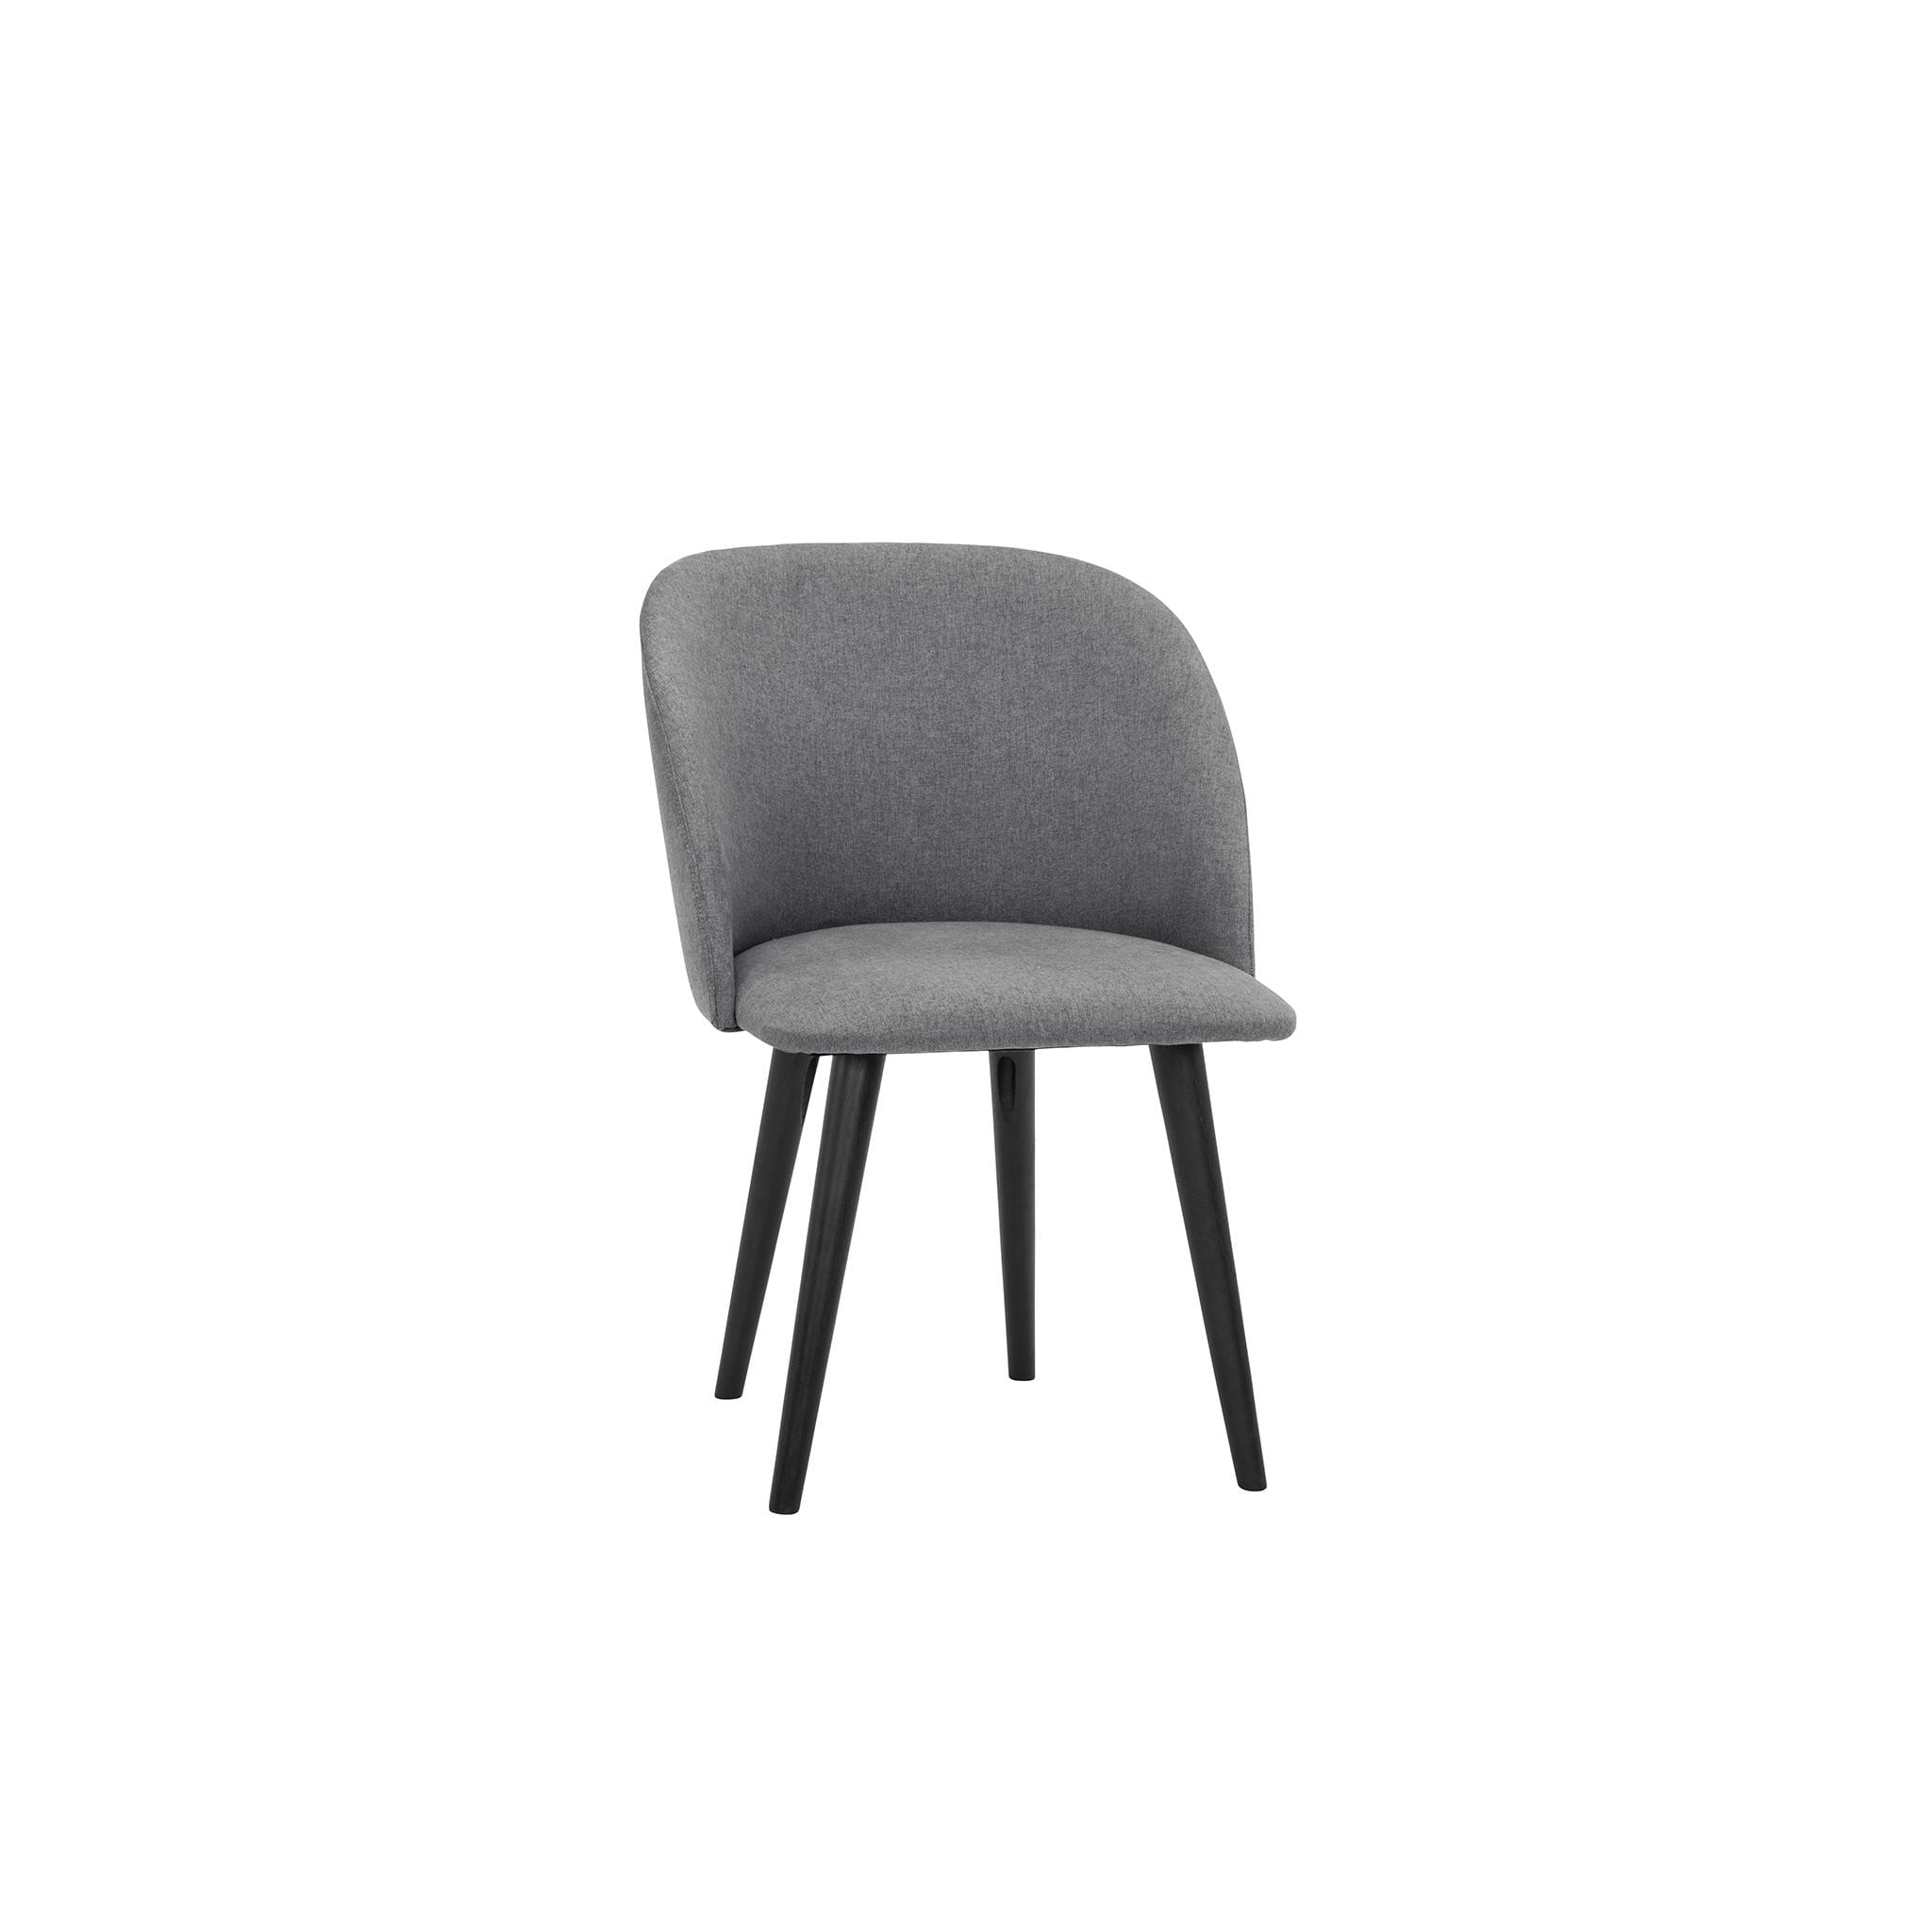 New Dining Chairs For Sale Melbourne Scandinavian Dining Chairs